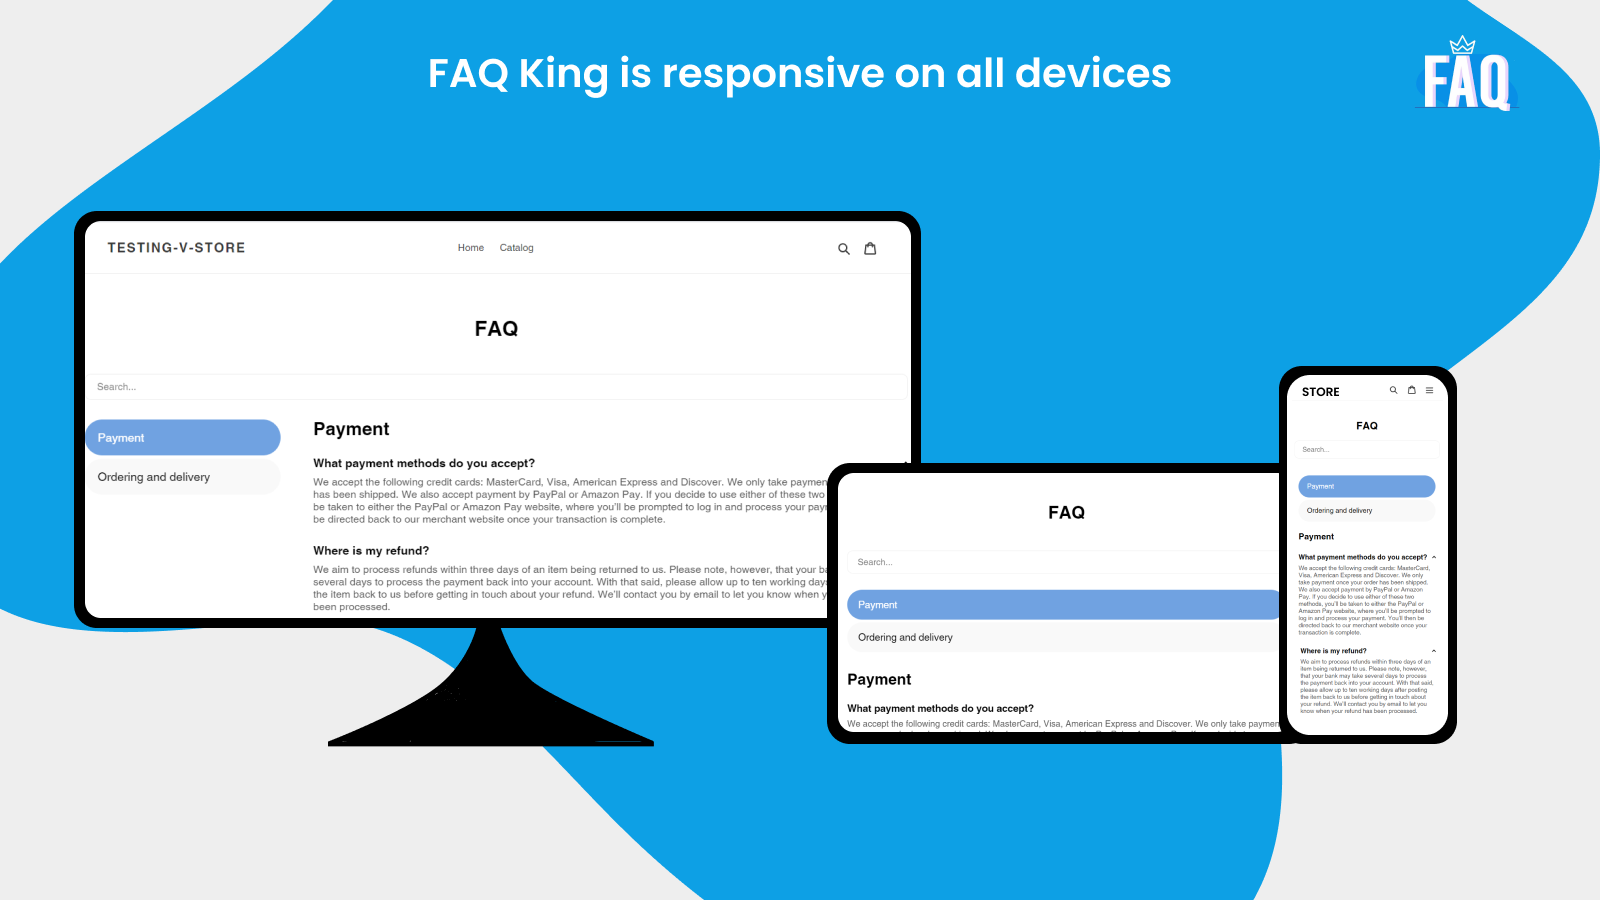 FAQ King is responsive on all devices